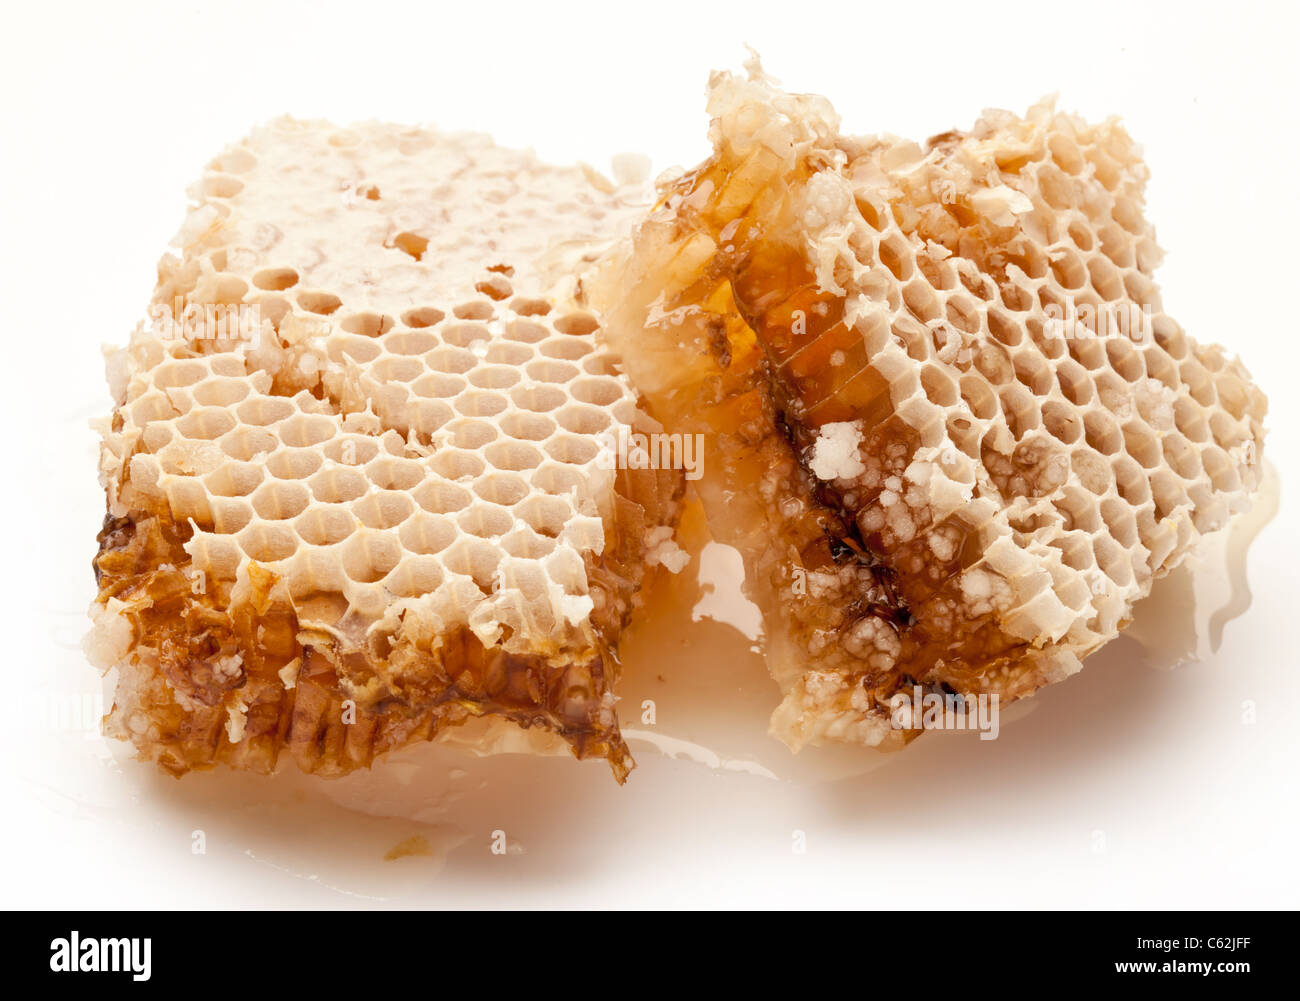 Close up view of honeycombs. - Stock Image